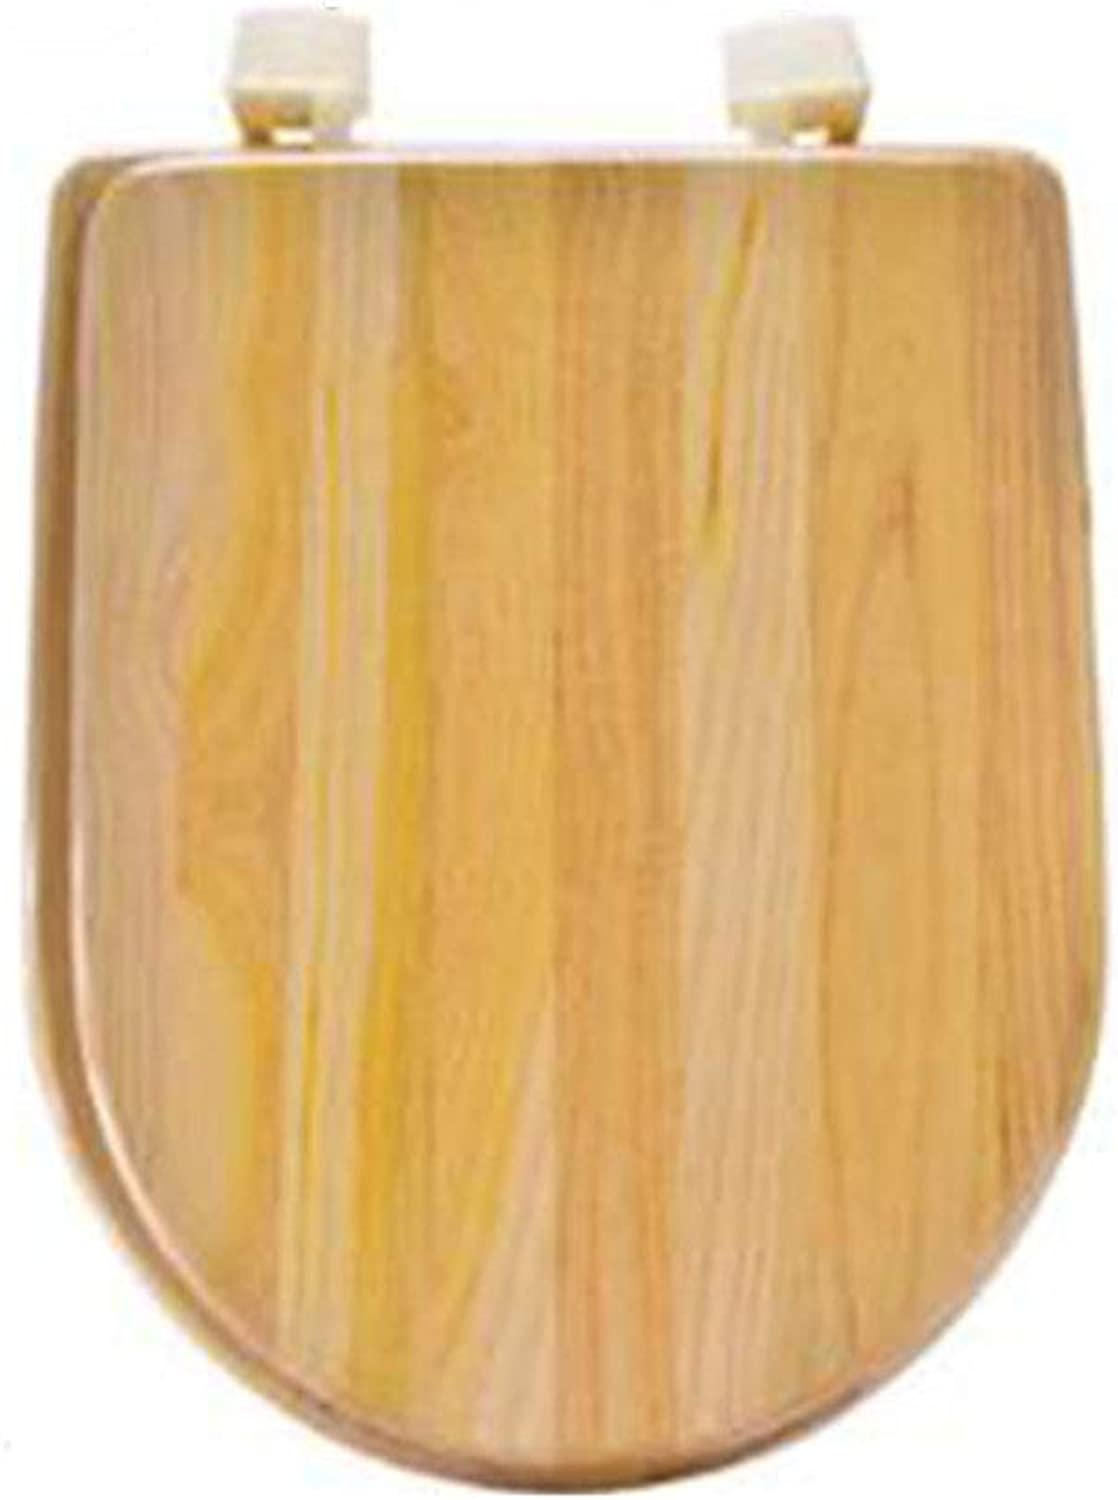 U-shaped, toilet seat solid wood toilet seat stable hinge easy to install